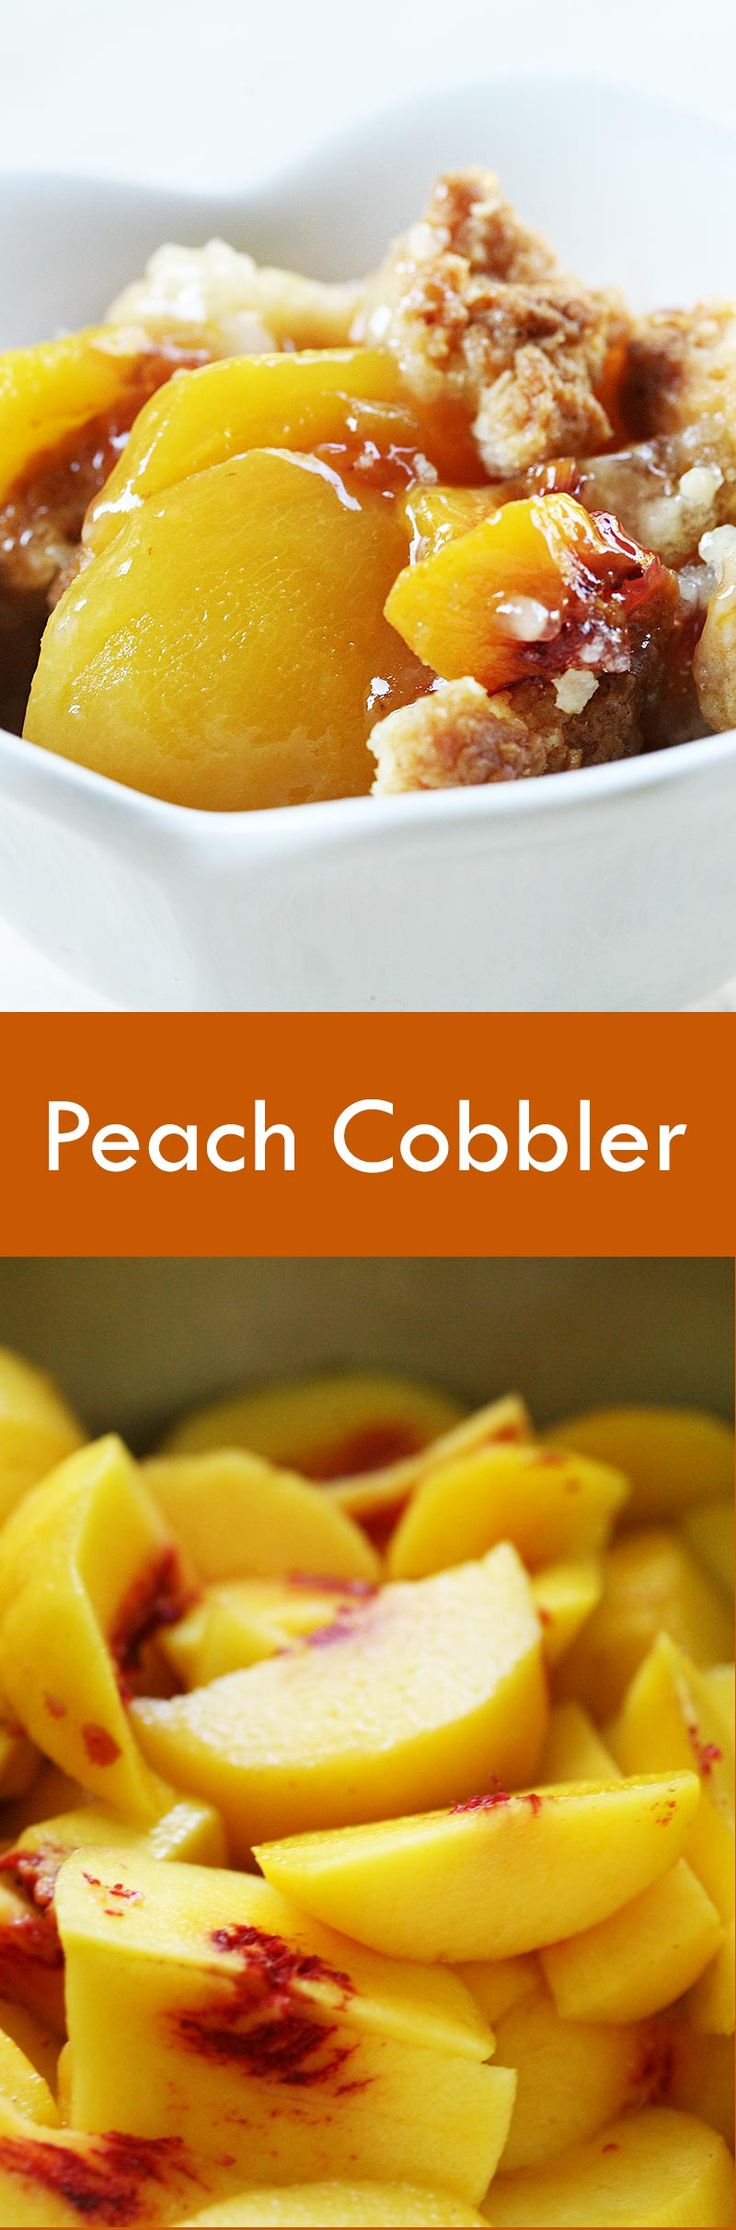 Peach cobbler, easy and delicious! Prepared with ripe yellow peaches, lemon, nutmeg, and a crumbled dough topping. On SimplyRecipes.com